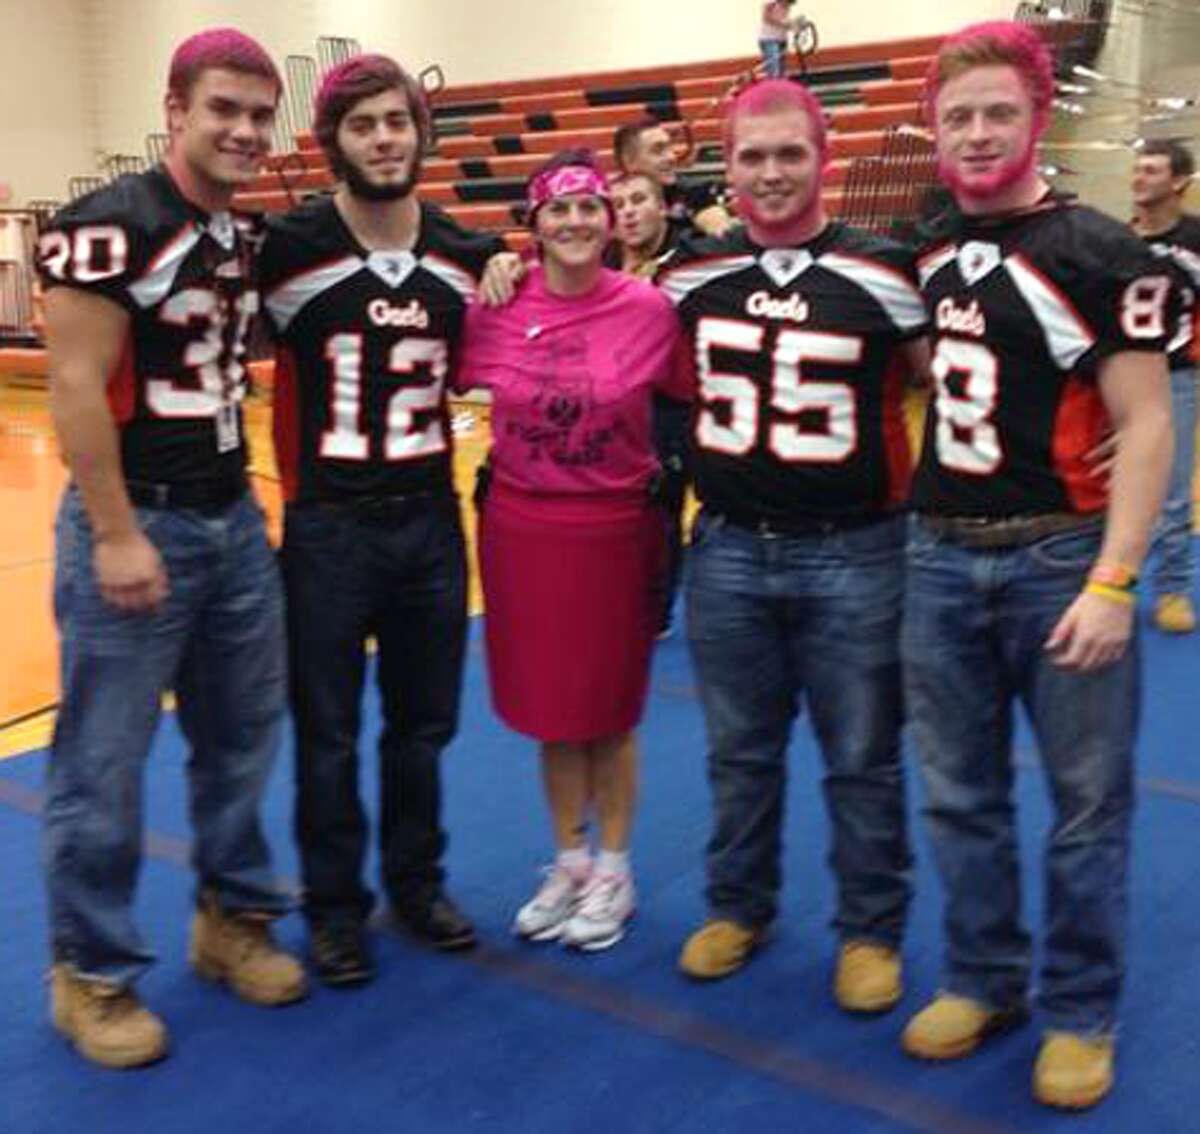 Members of the Gaels football team sport pink haircuts while posing with Shelton High Headmaster Beth Smith.